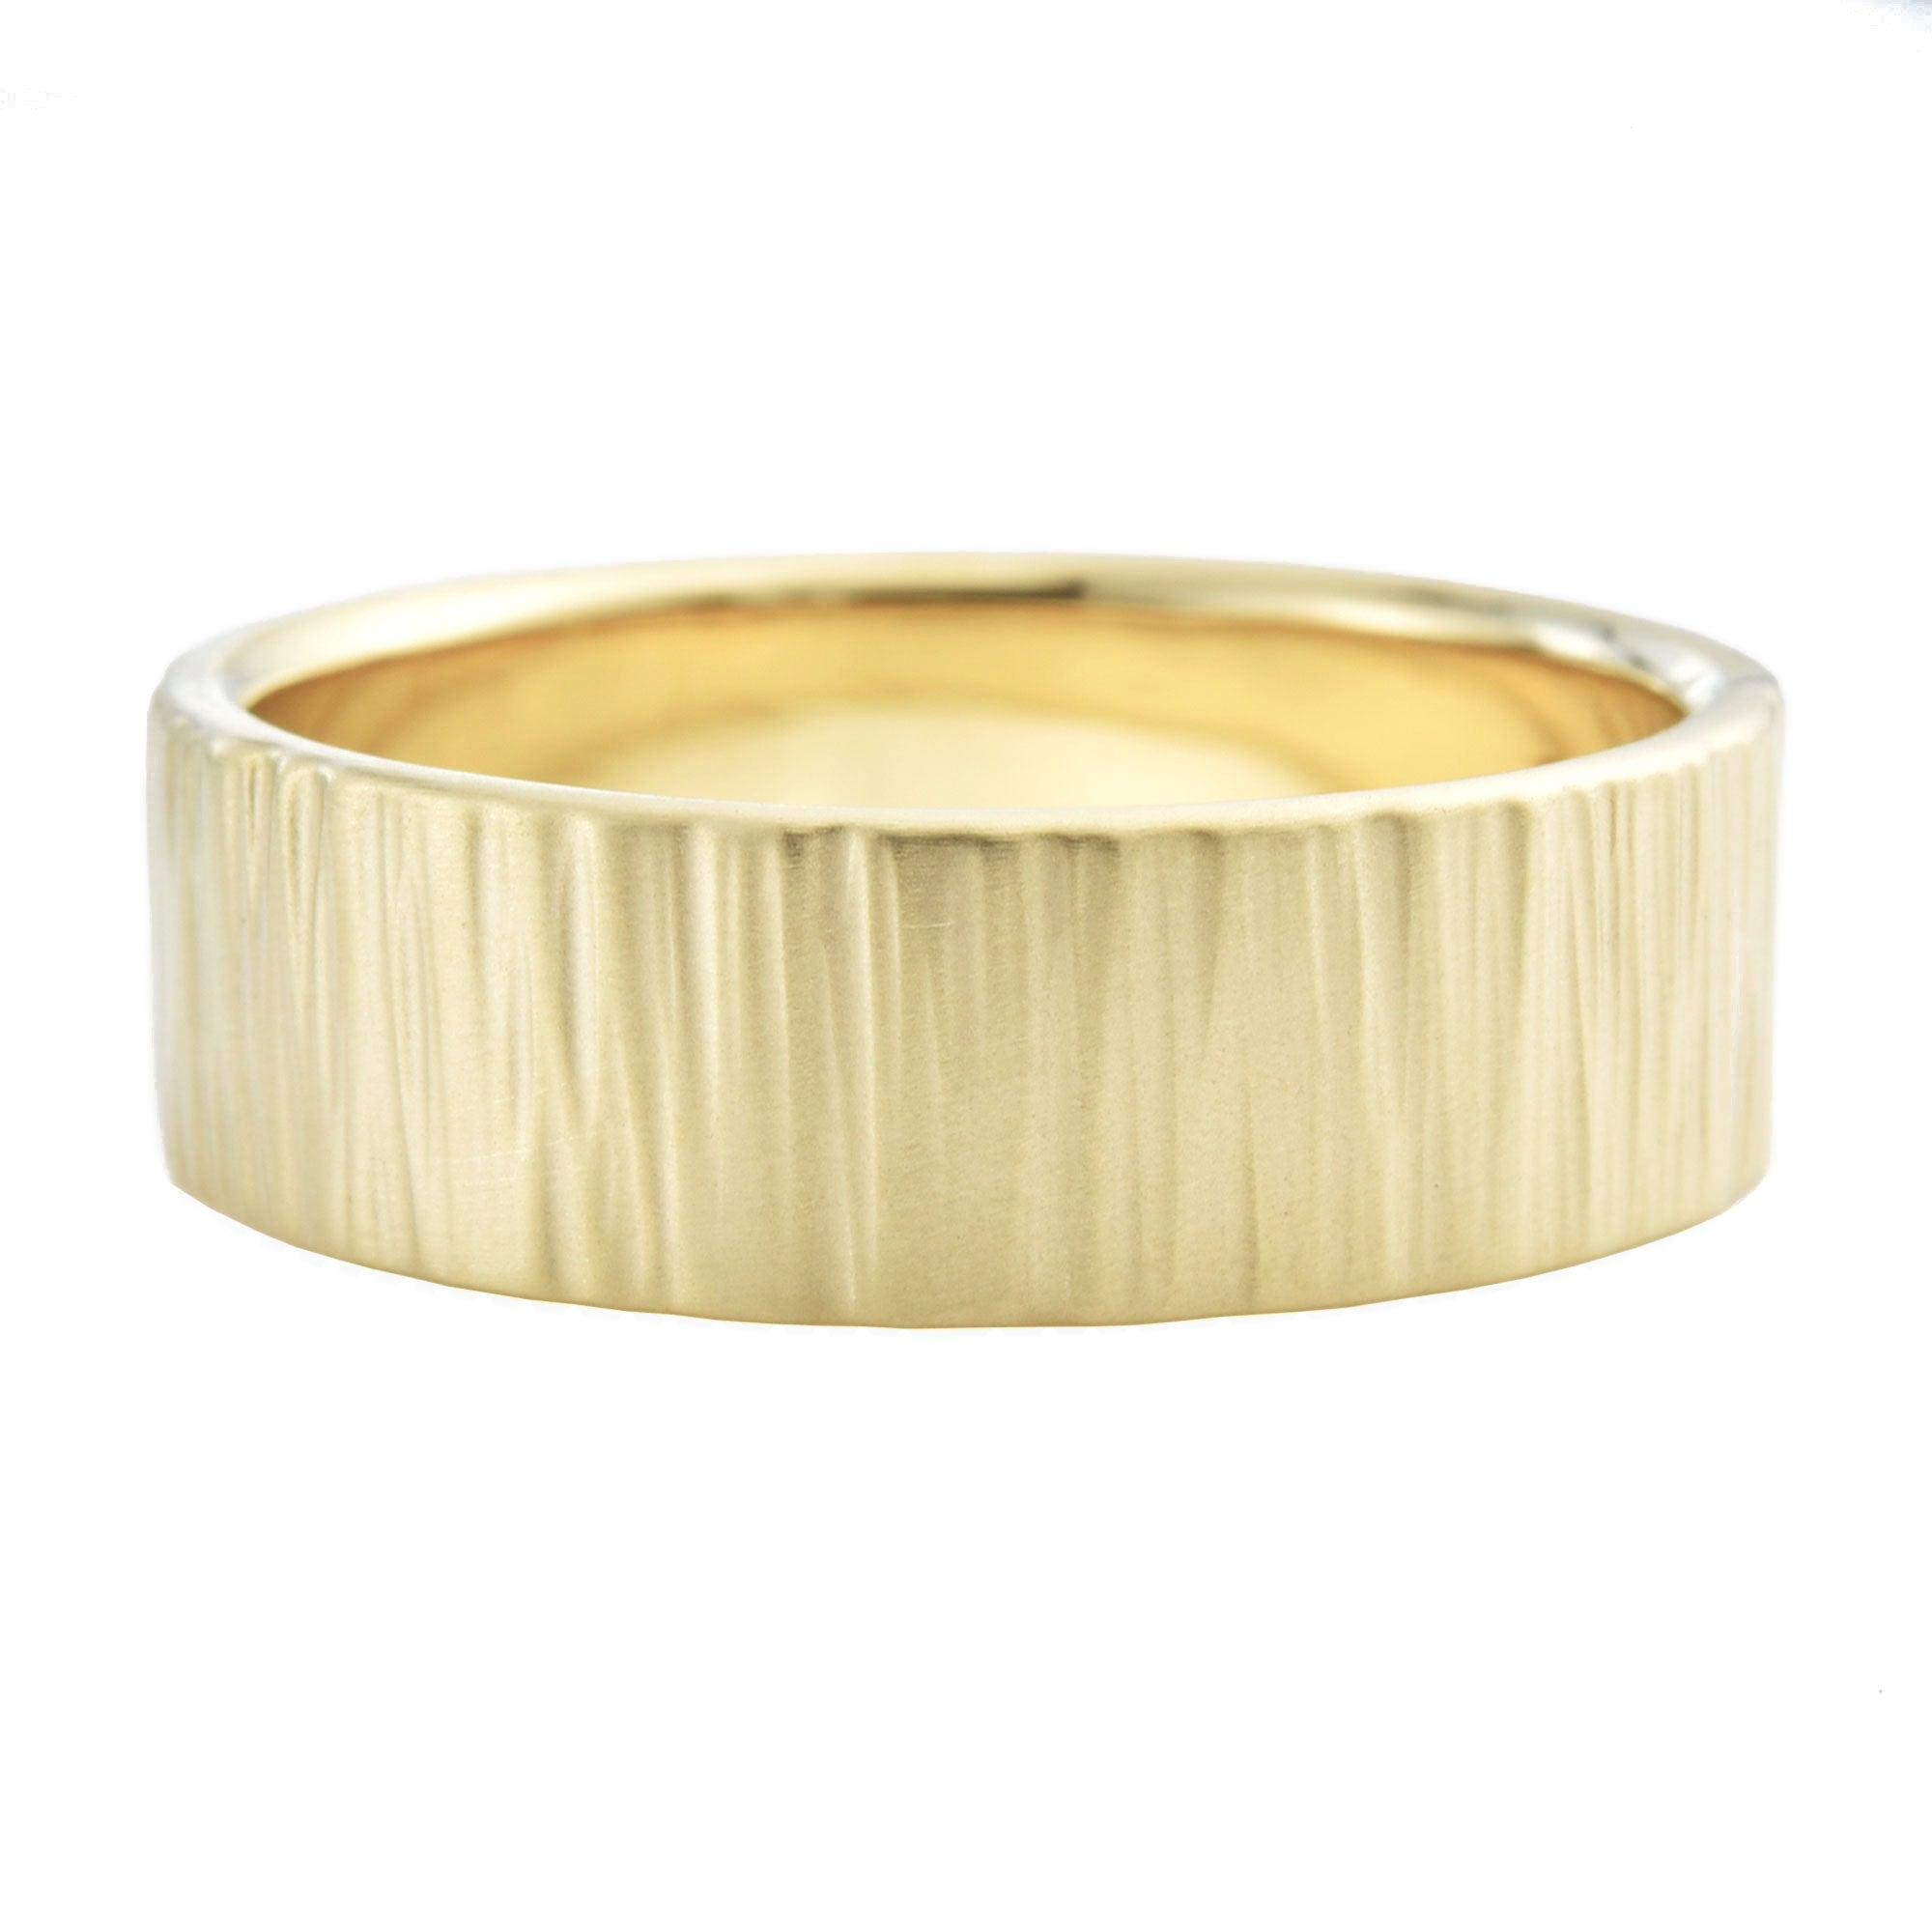 Men's 7mm Birch Wedding Band in yellow gold